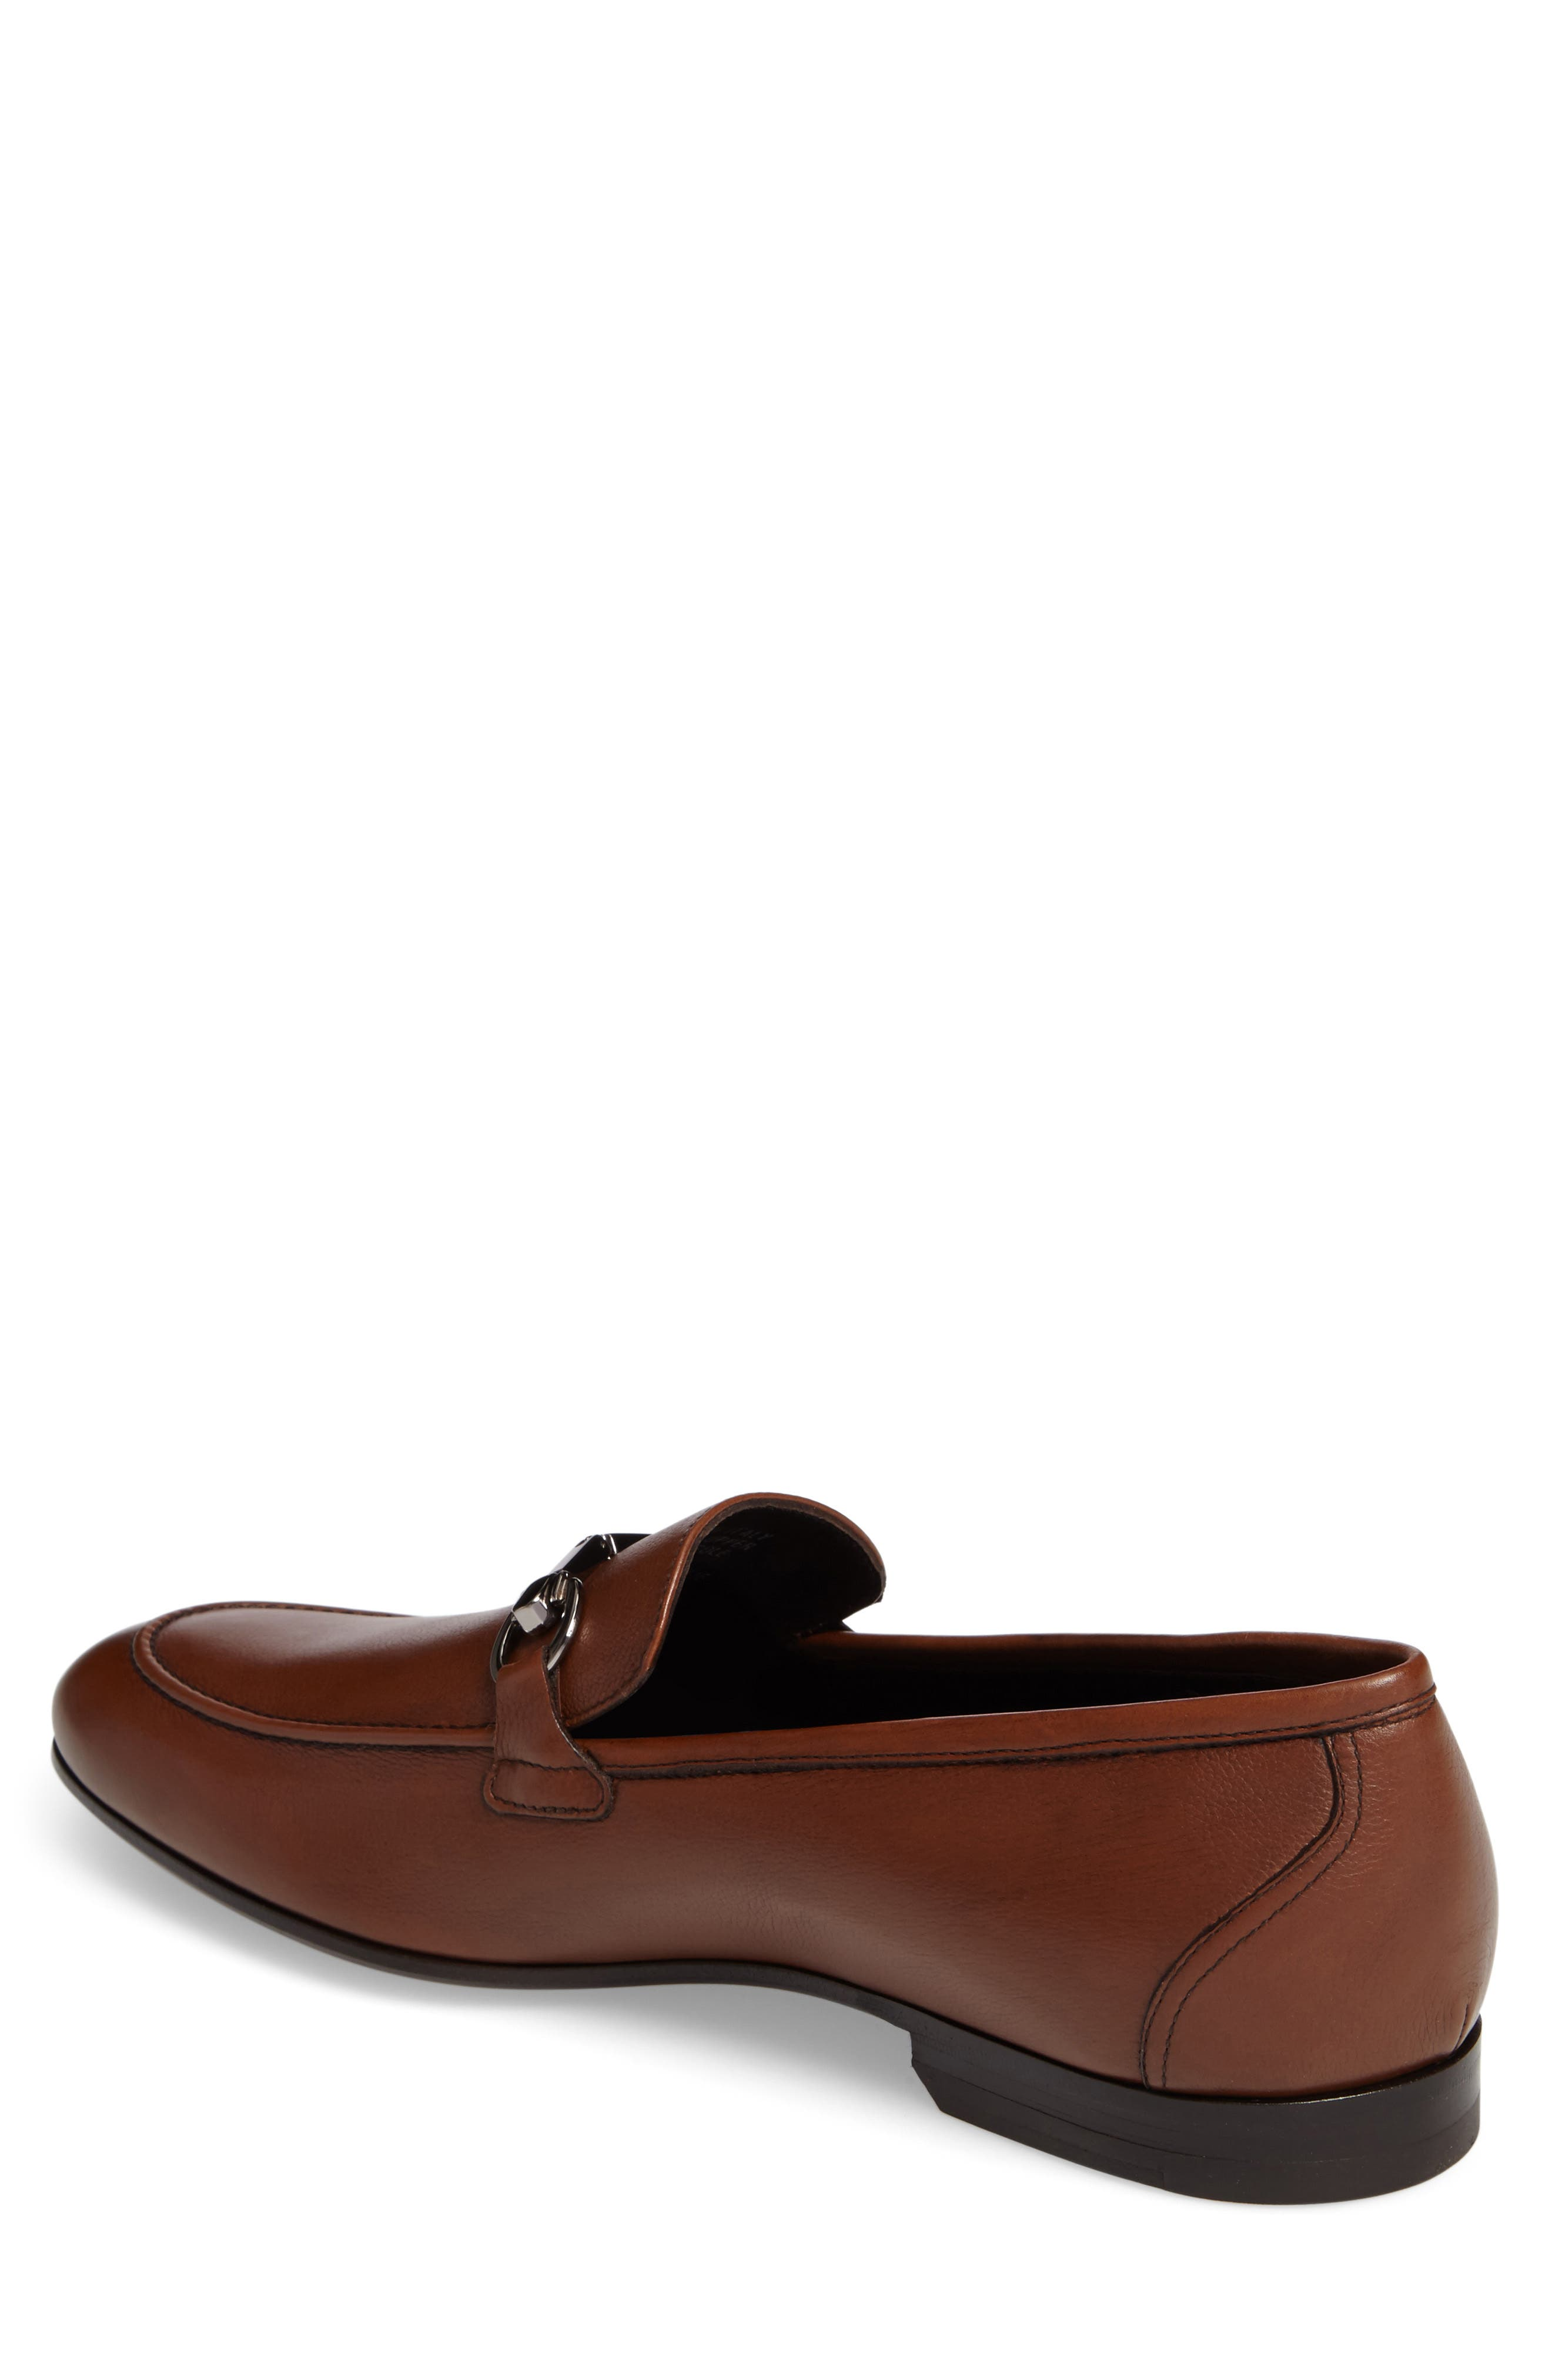 Brianza Bit Loafer,                             Alternate thumbnail 11, color,